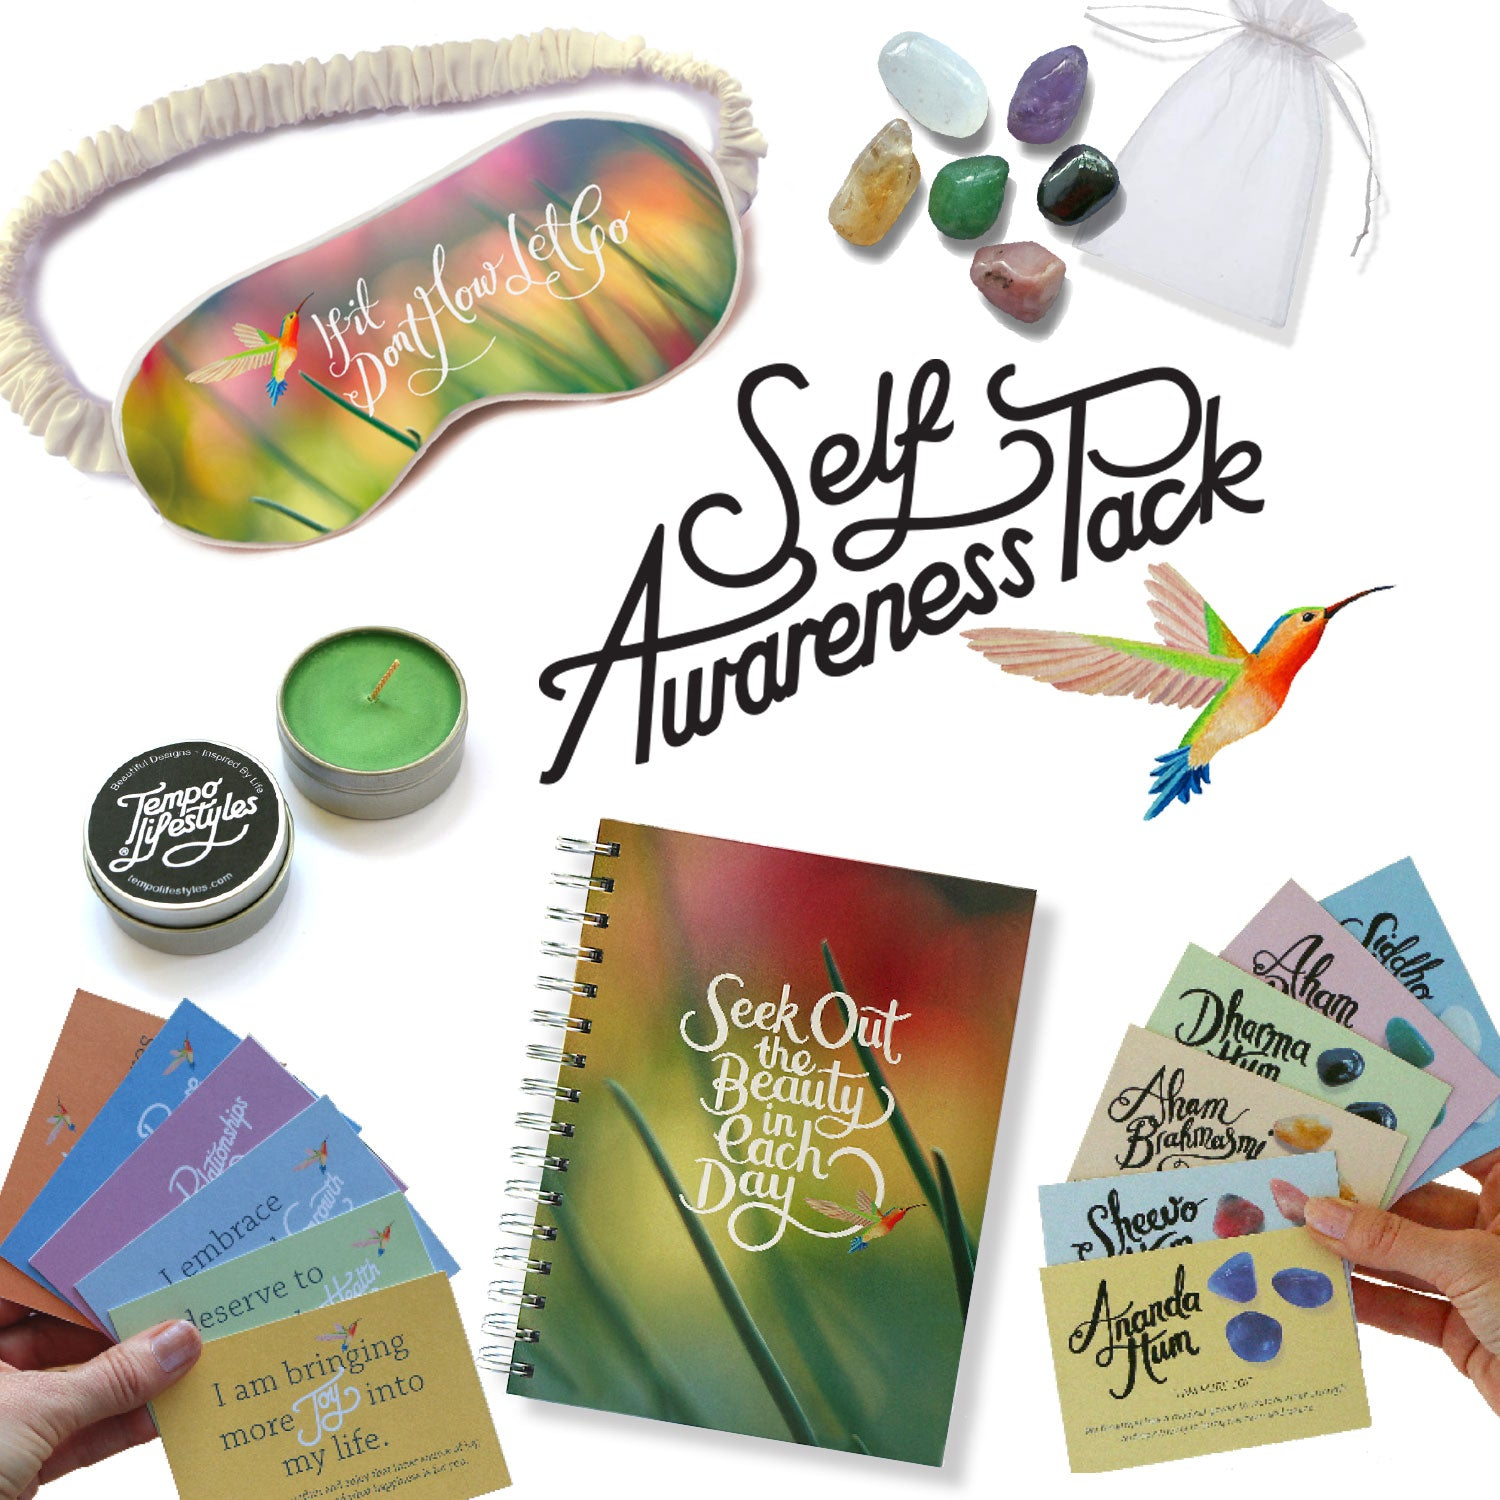 SELF-AWARENESS PACK - find balance in a changing world